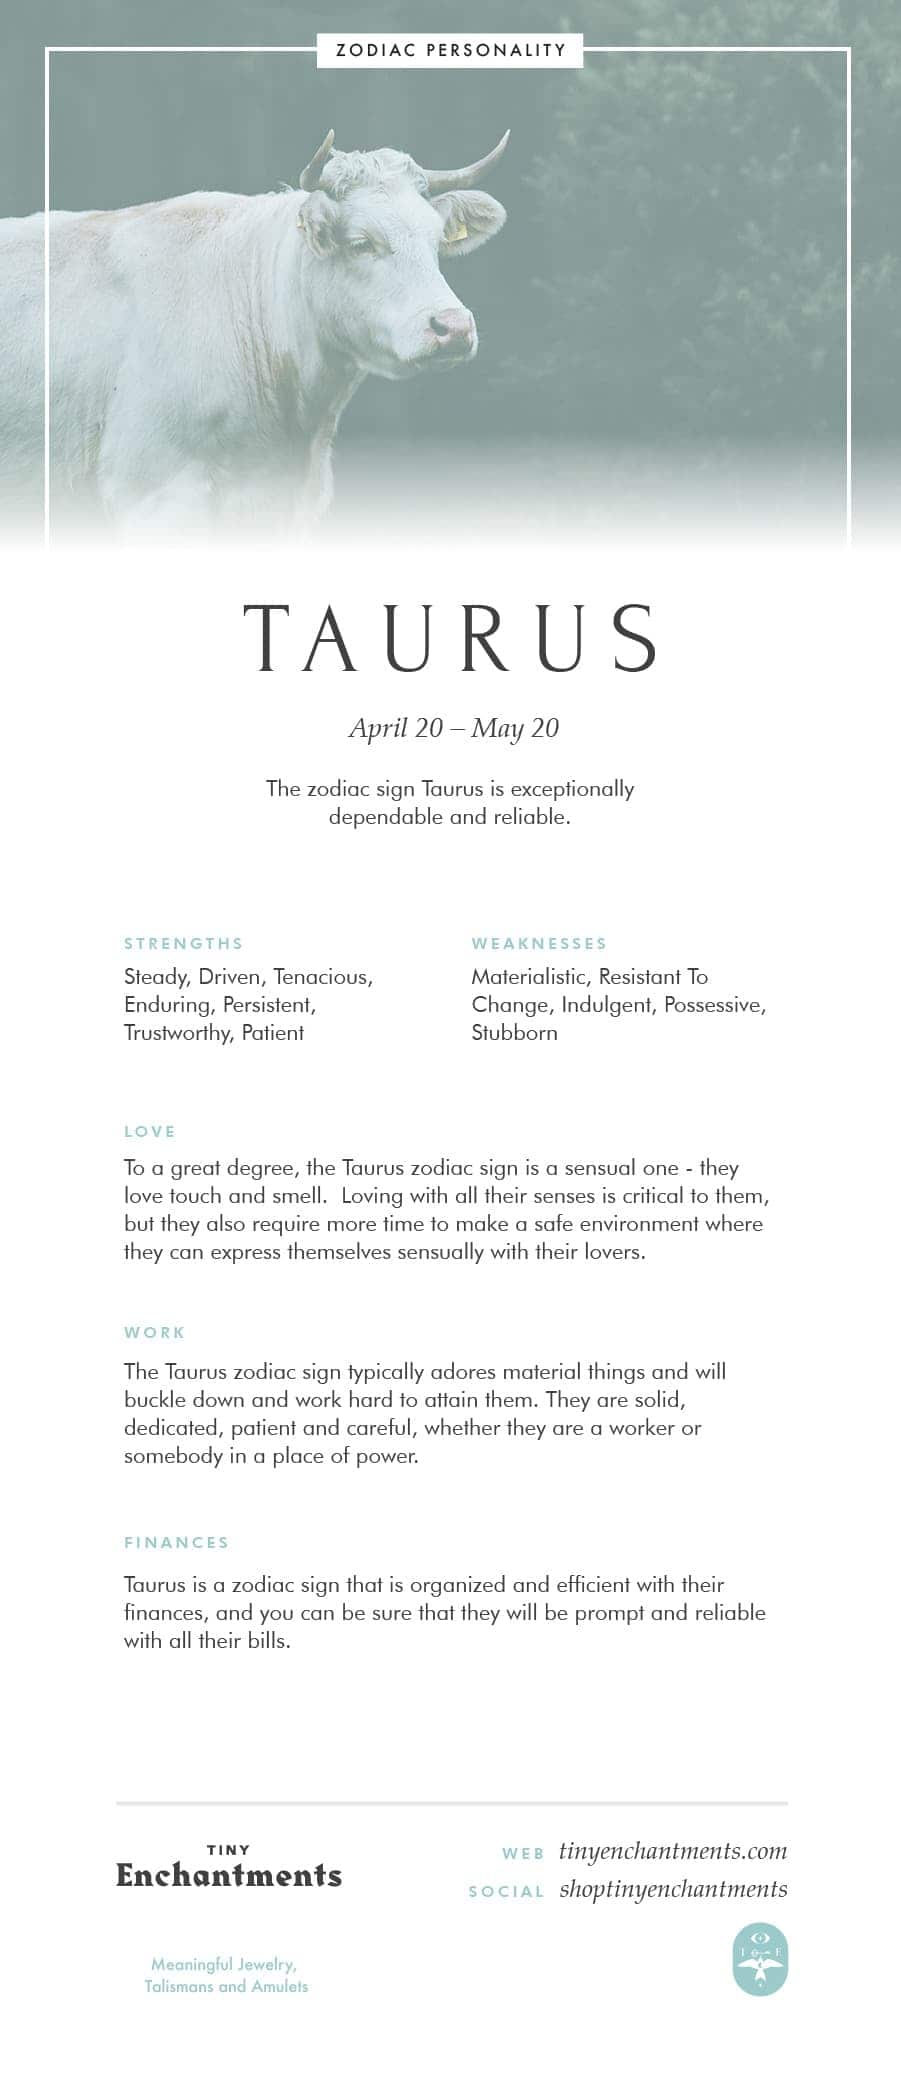 Taurus Zodiac Sign Correspondences - Taurus Personality, Taurus Symbol, Taurus Mythology and Taurus Meaning